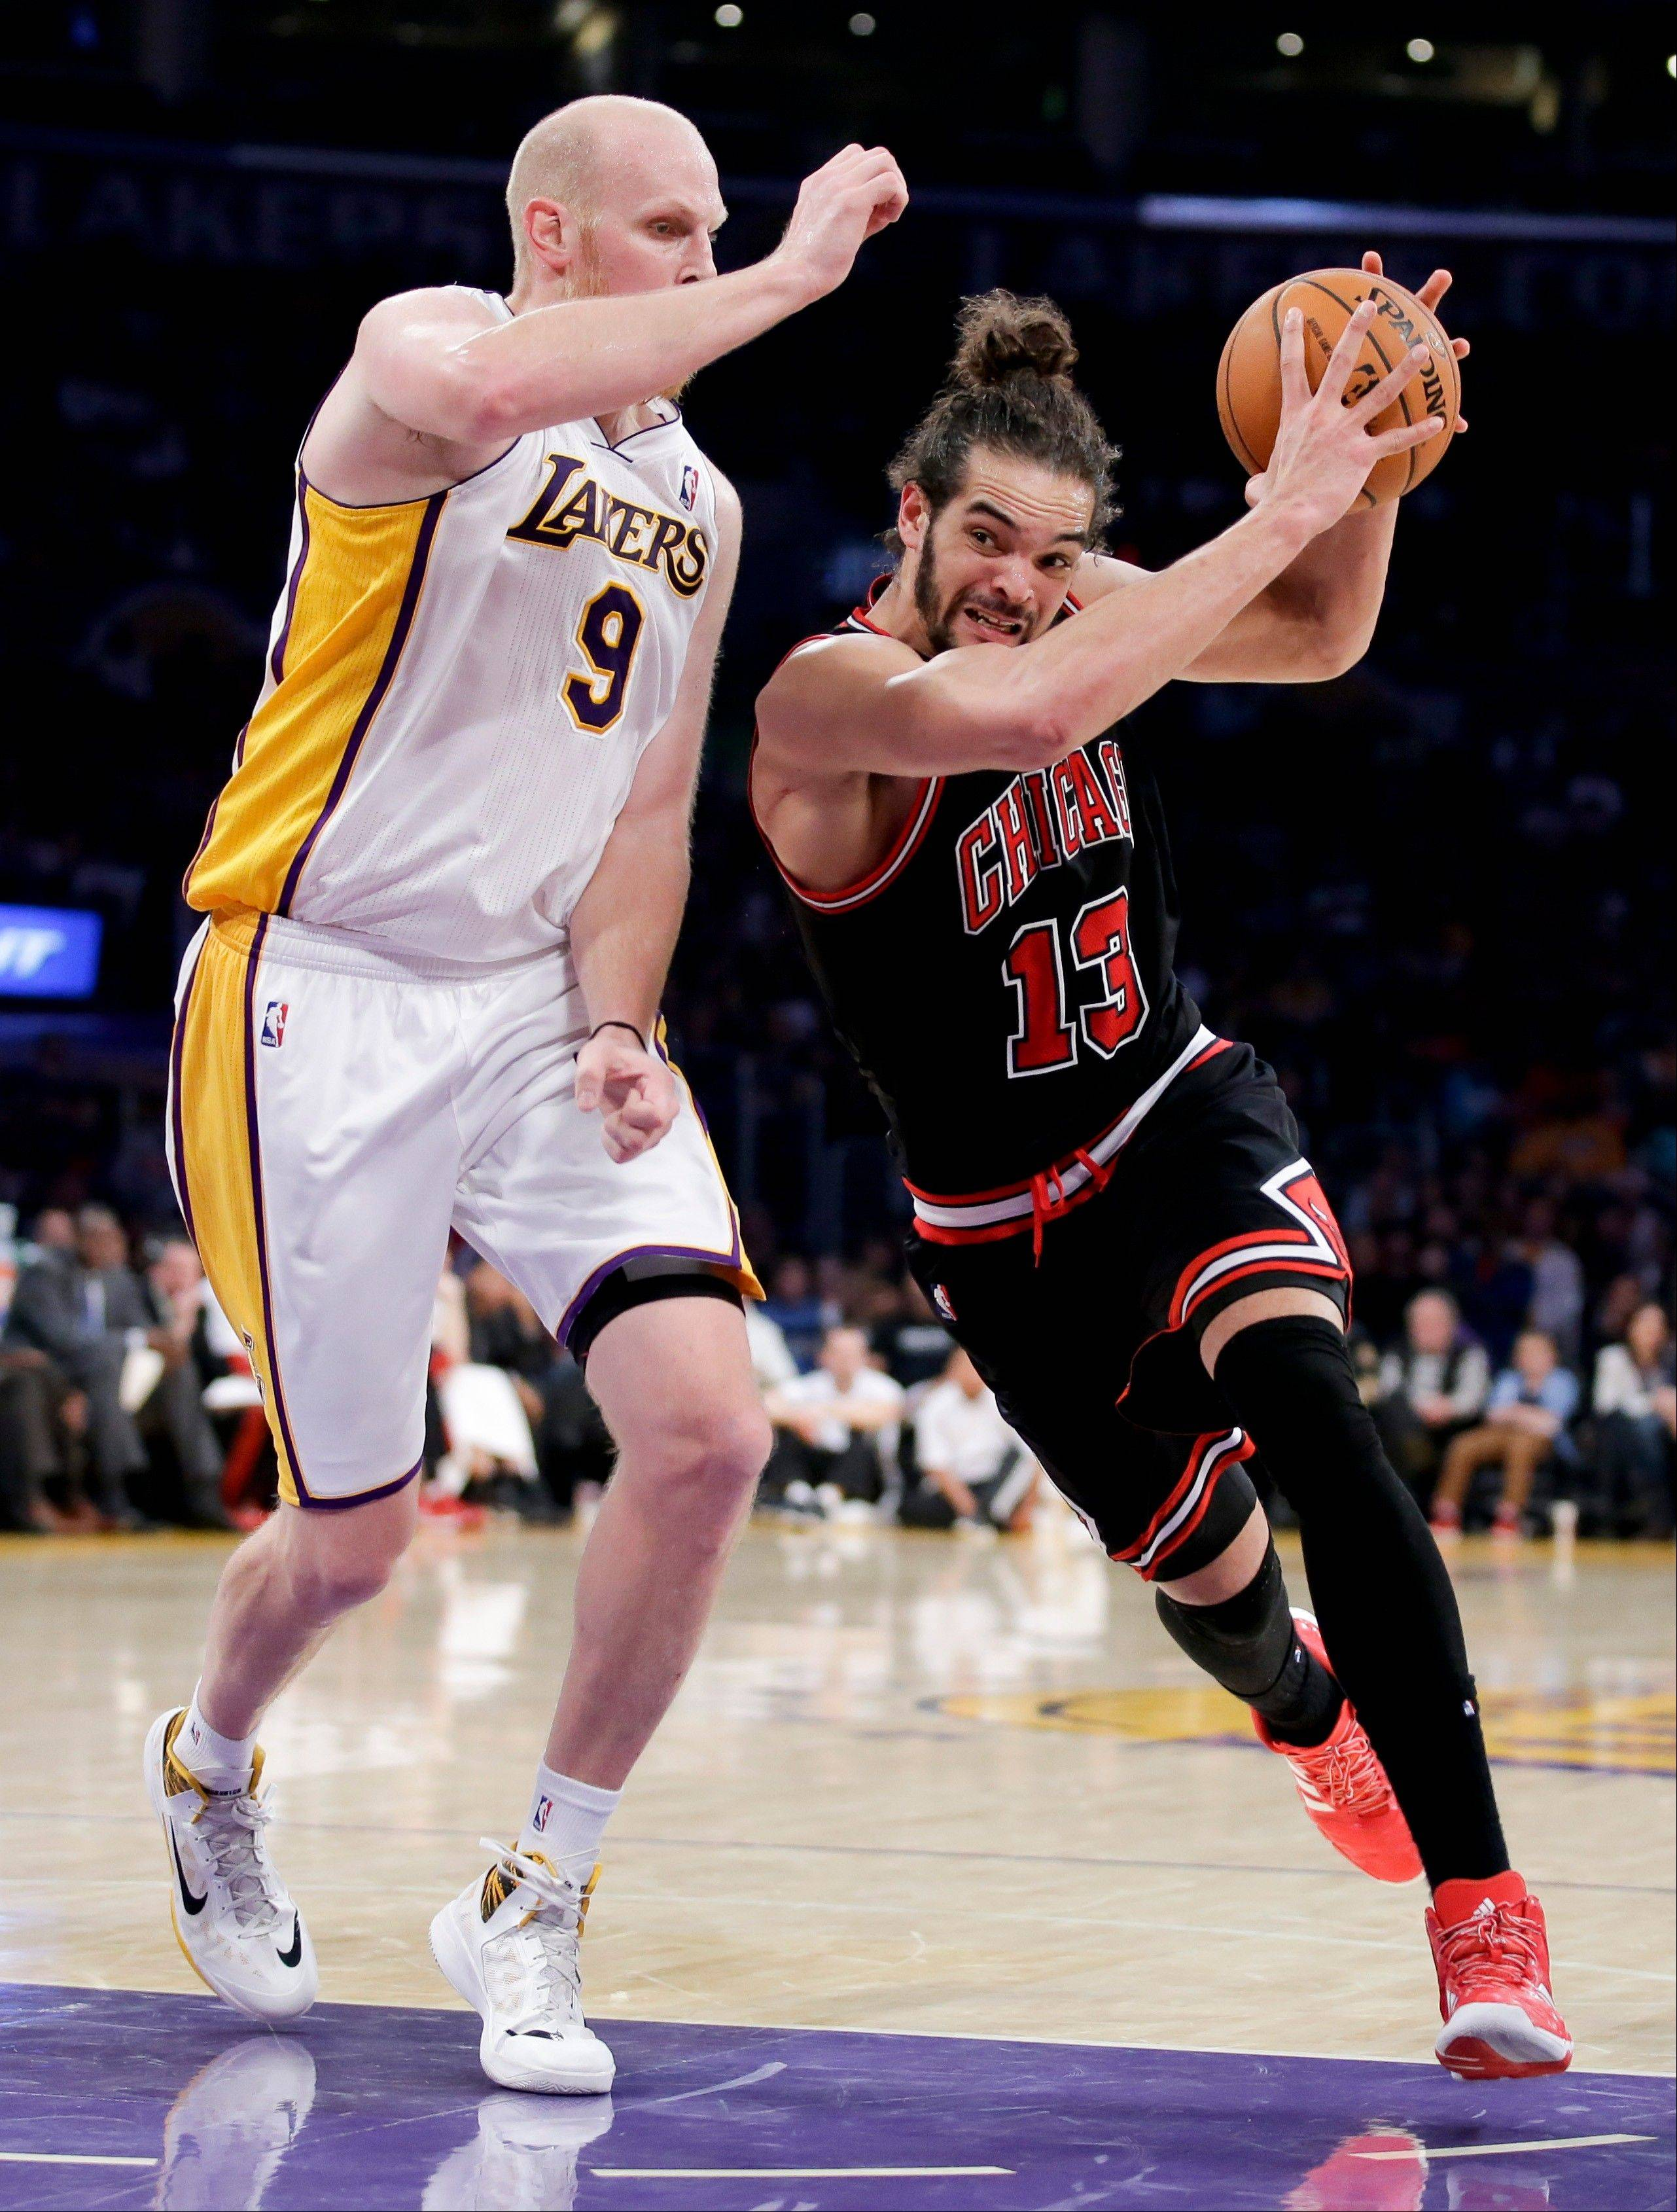 The Bulls' Joakim Noah drives around the Lakers' Chris Kaman during the second half Sunday.